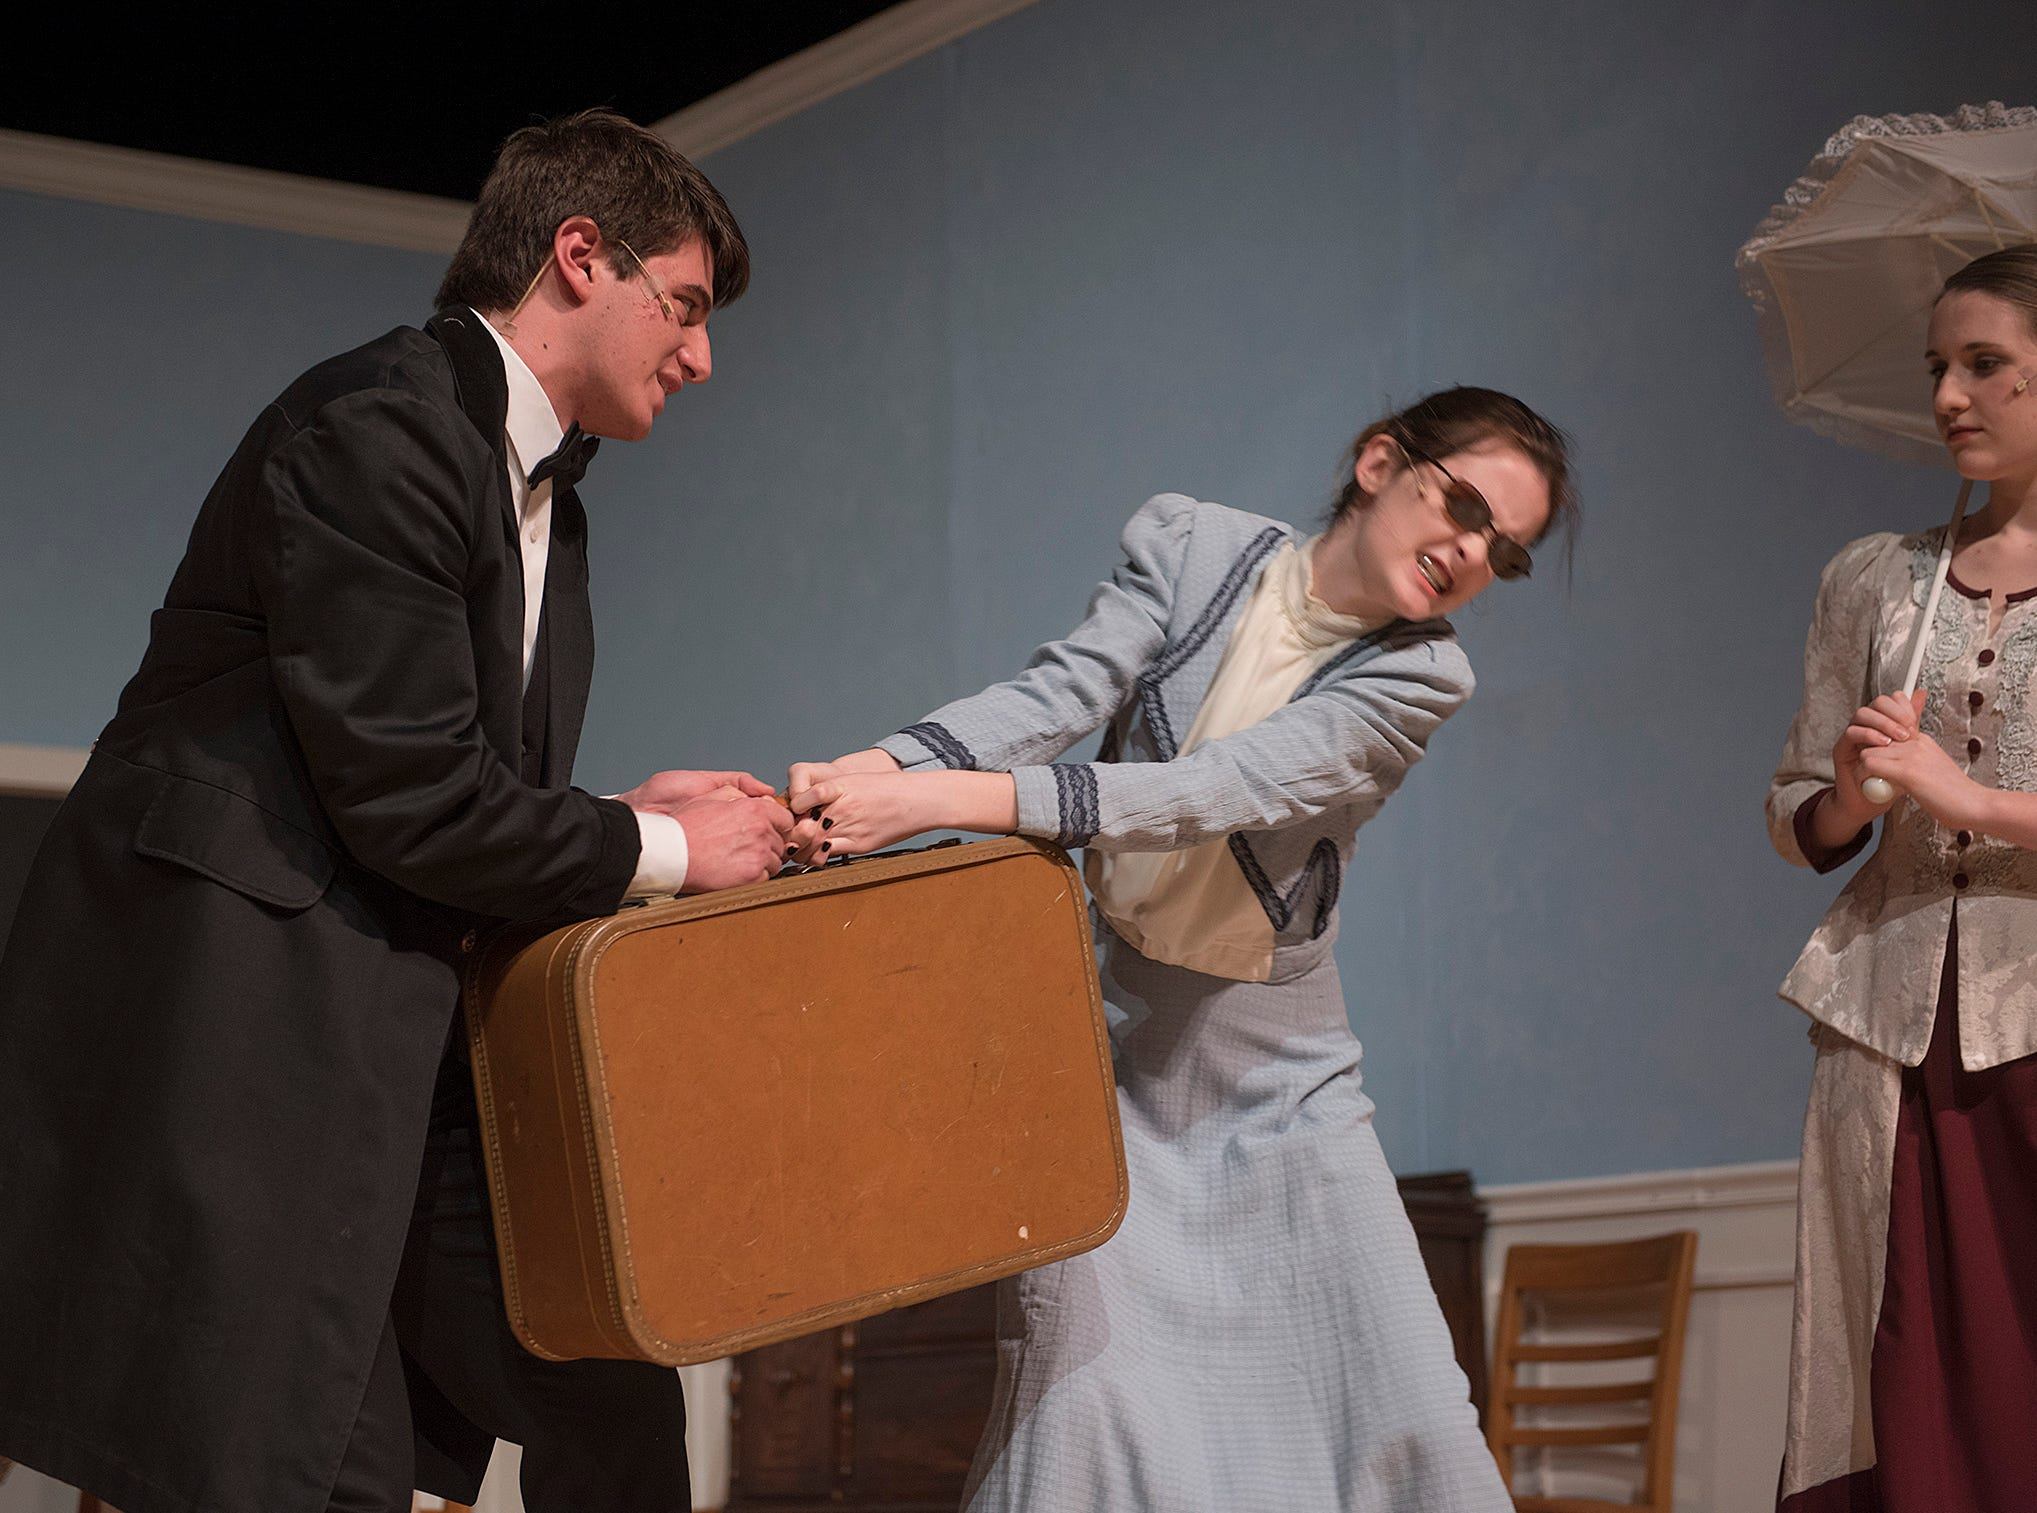 Captain Keller (Charles Hilu) , a veteran of the Confederacy, isn't used to young womwn from the northern states who don't immediately defer to him. Annie Sullivan (Caitlin Griffin) will carry her own luggage.